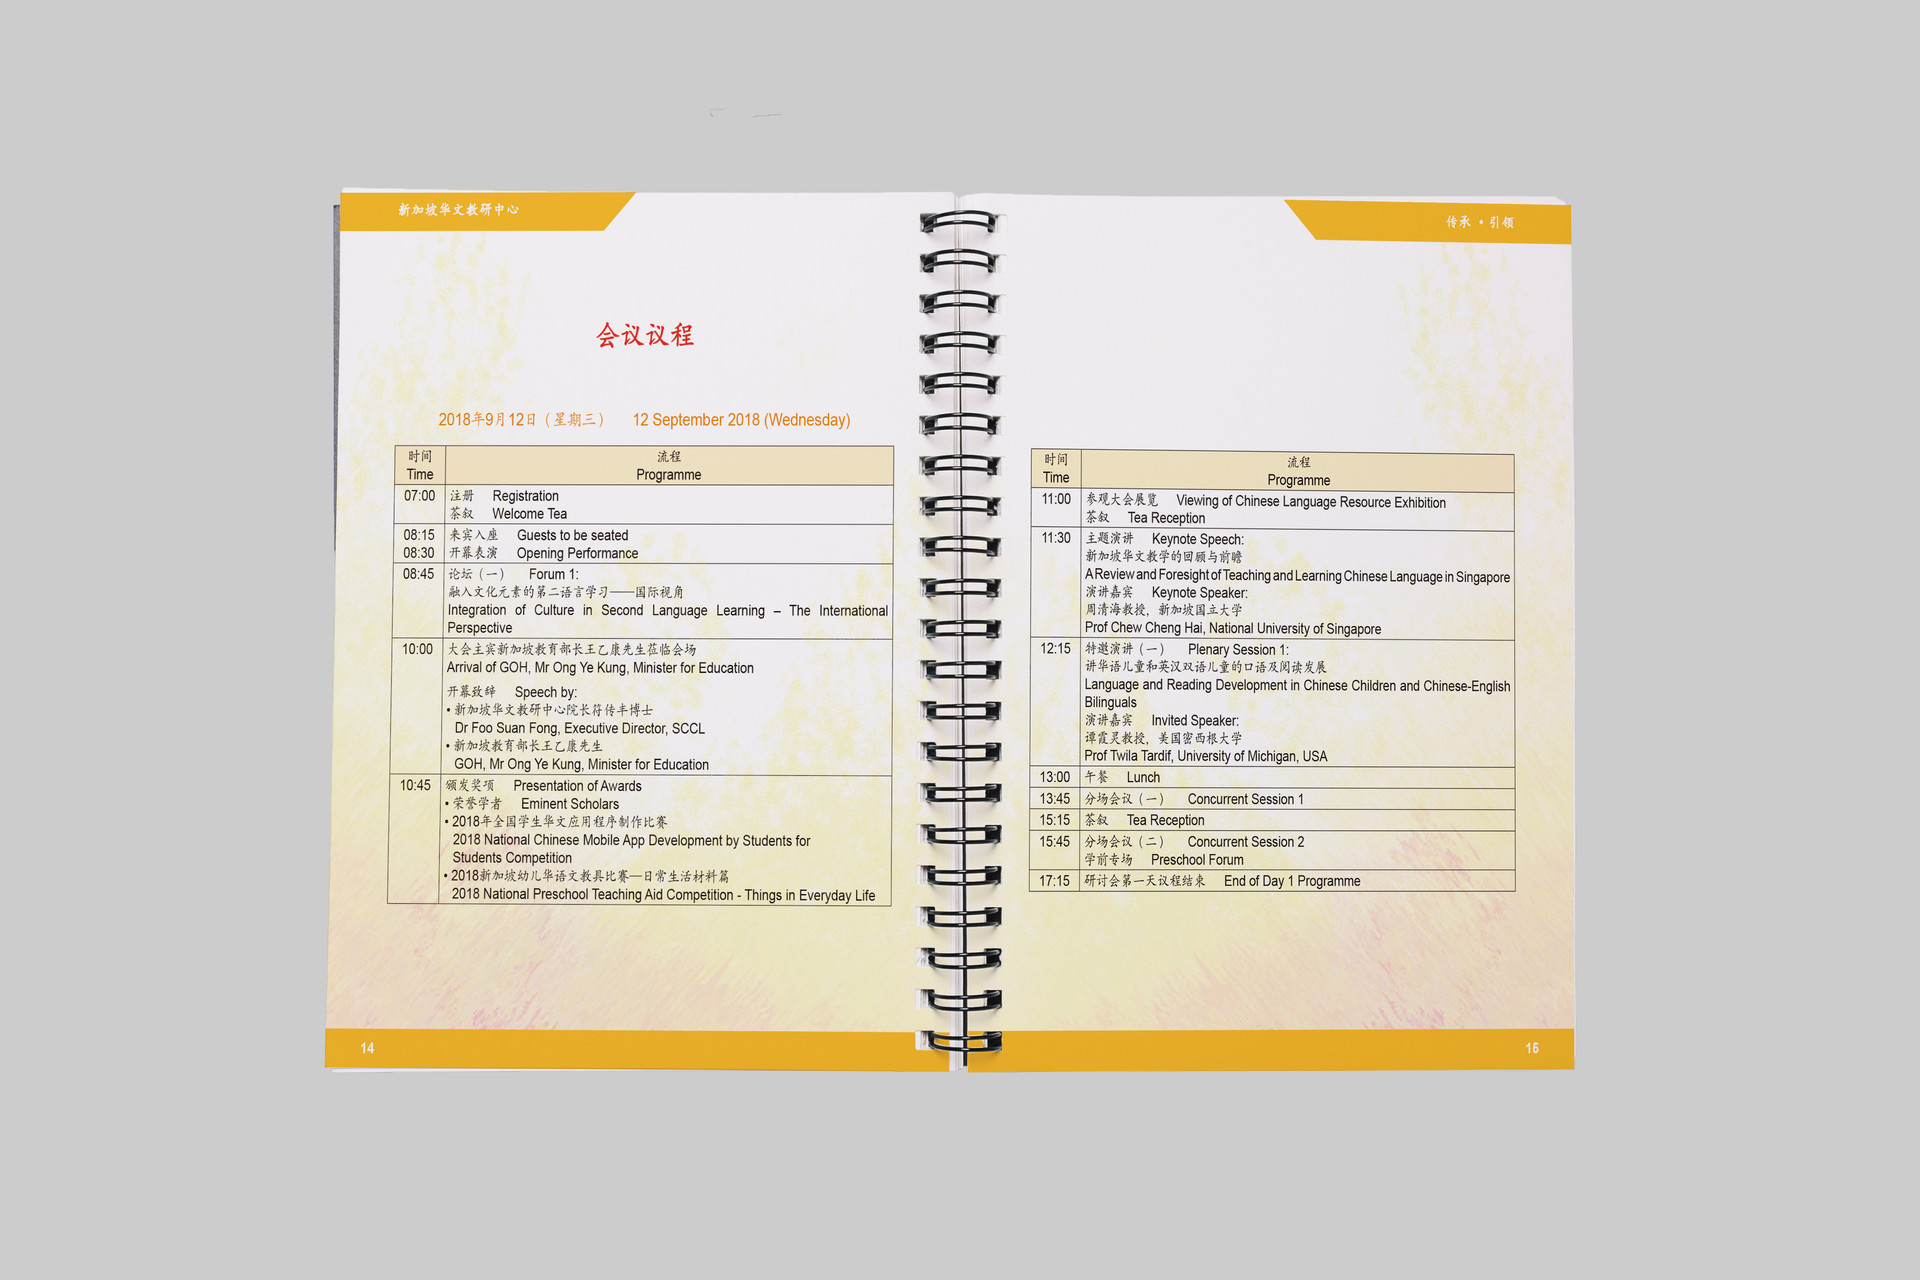 PA Event Programme Booklet Content